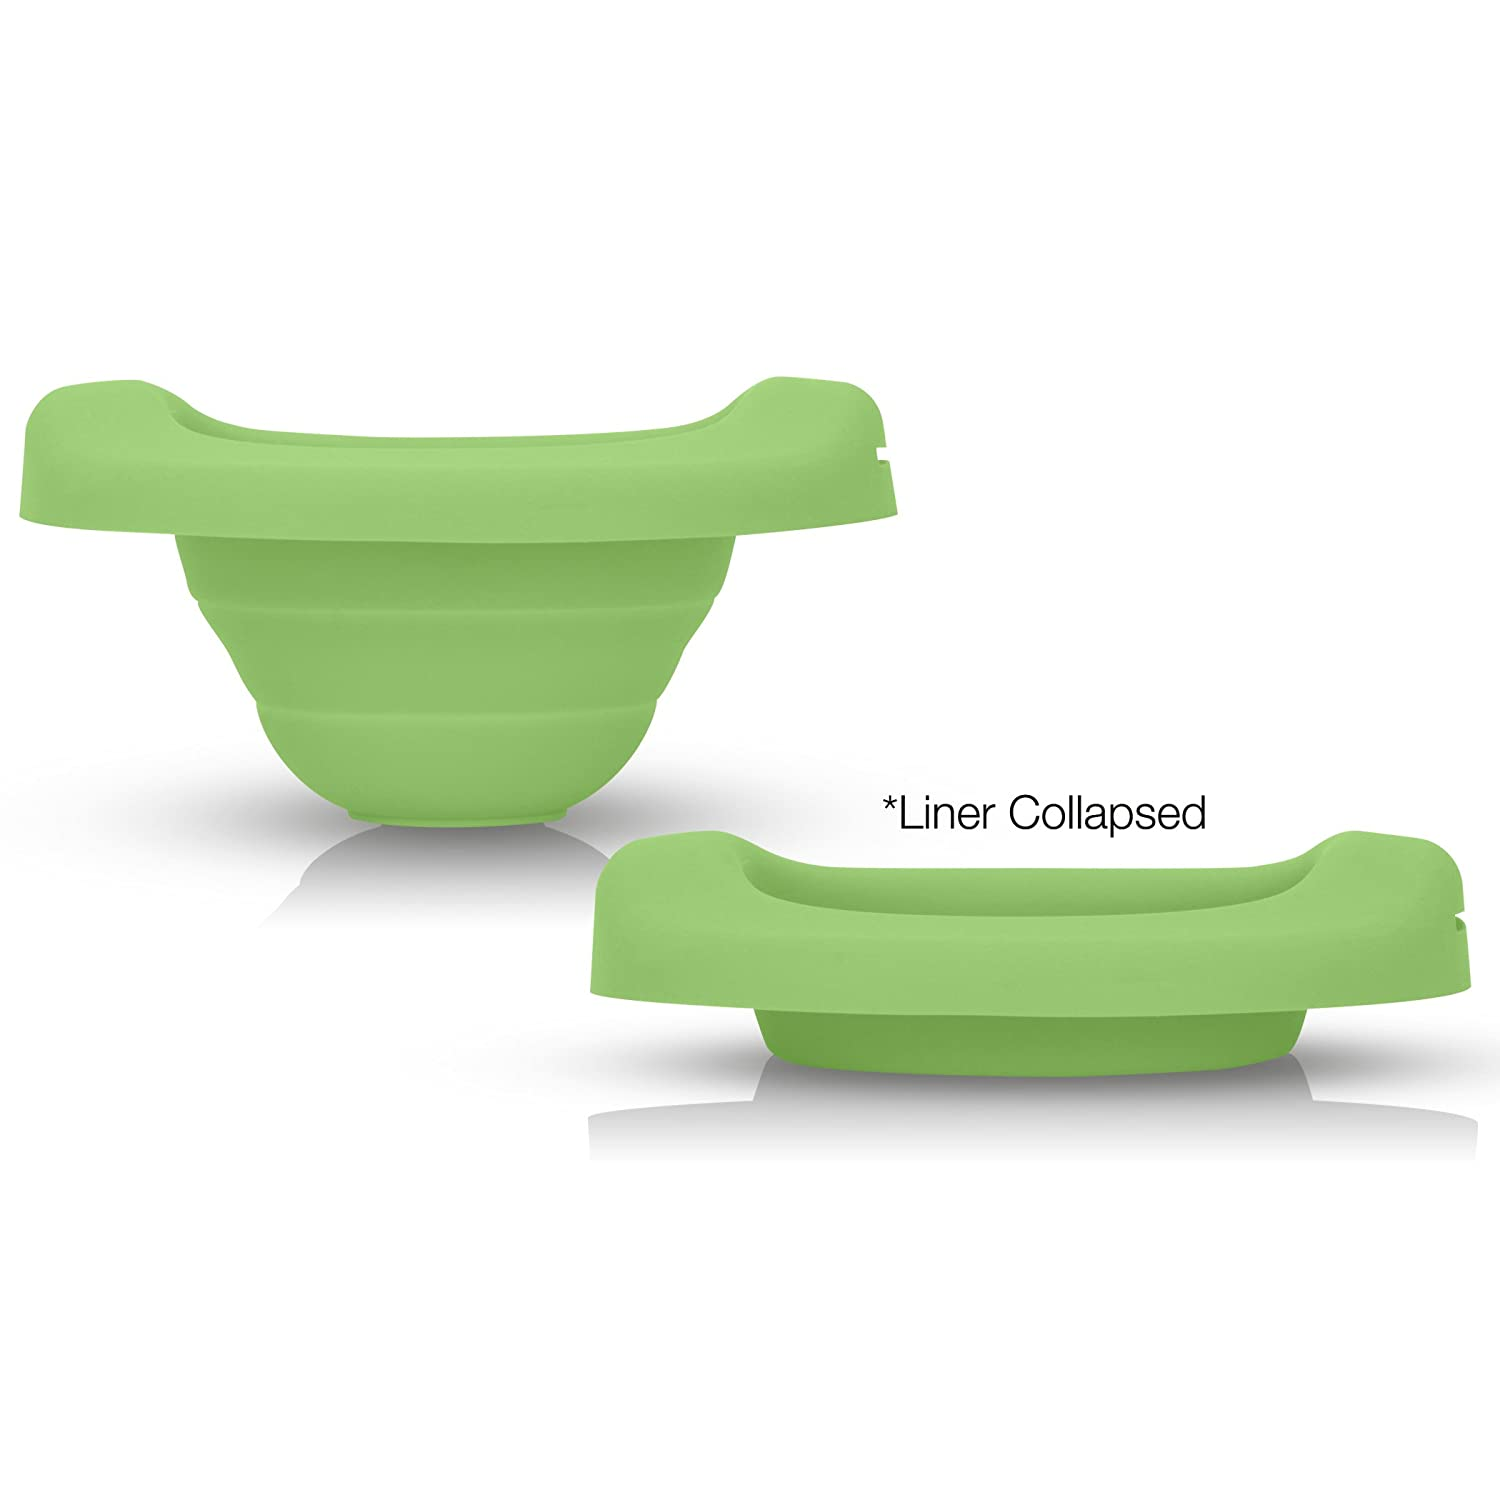 Reusable Collapsible Travel Potty Liner : Kalencom Potette Plus Potty Liner For Home Use With The 2-in-1 Potette Plus Potty (sold separately) (Green) 2728